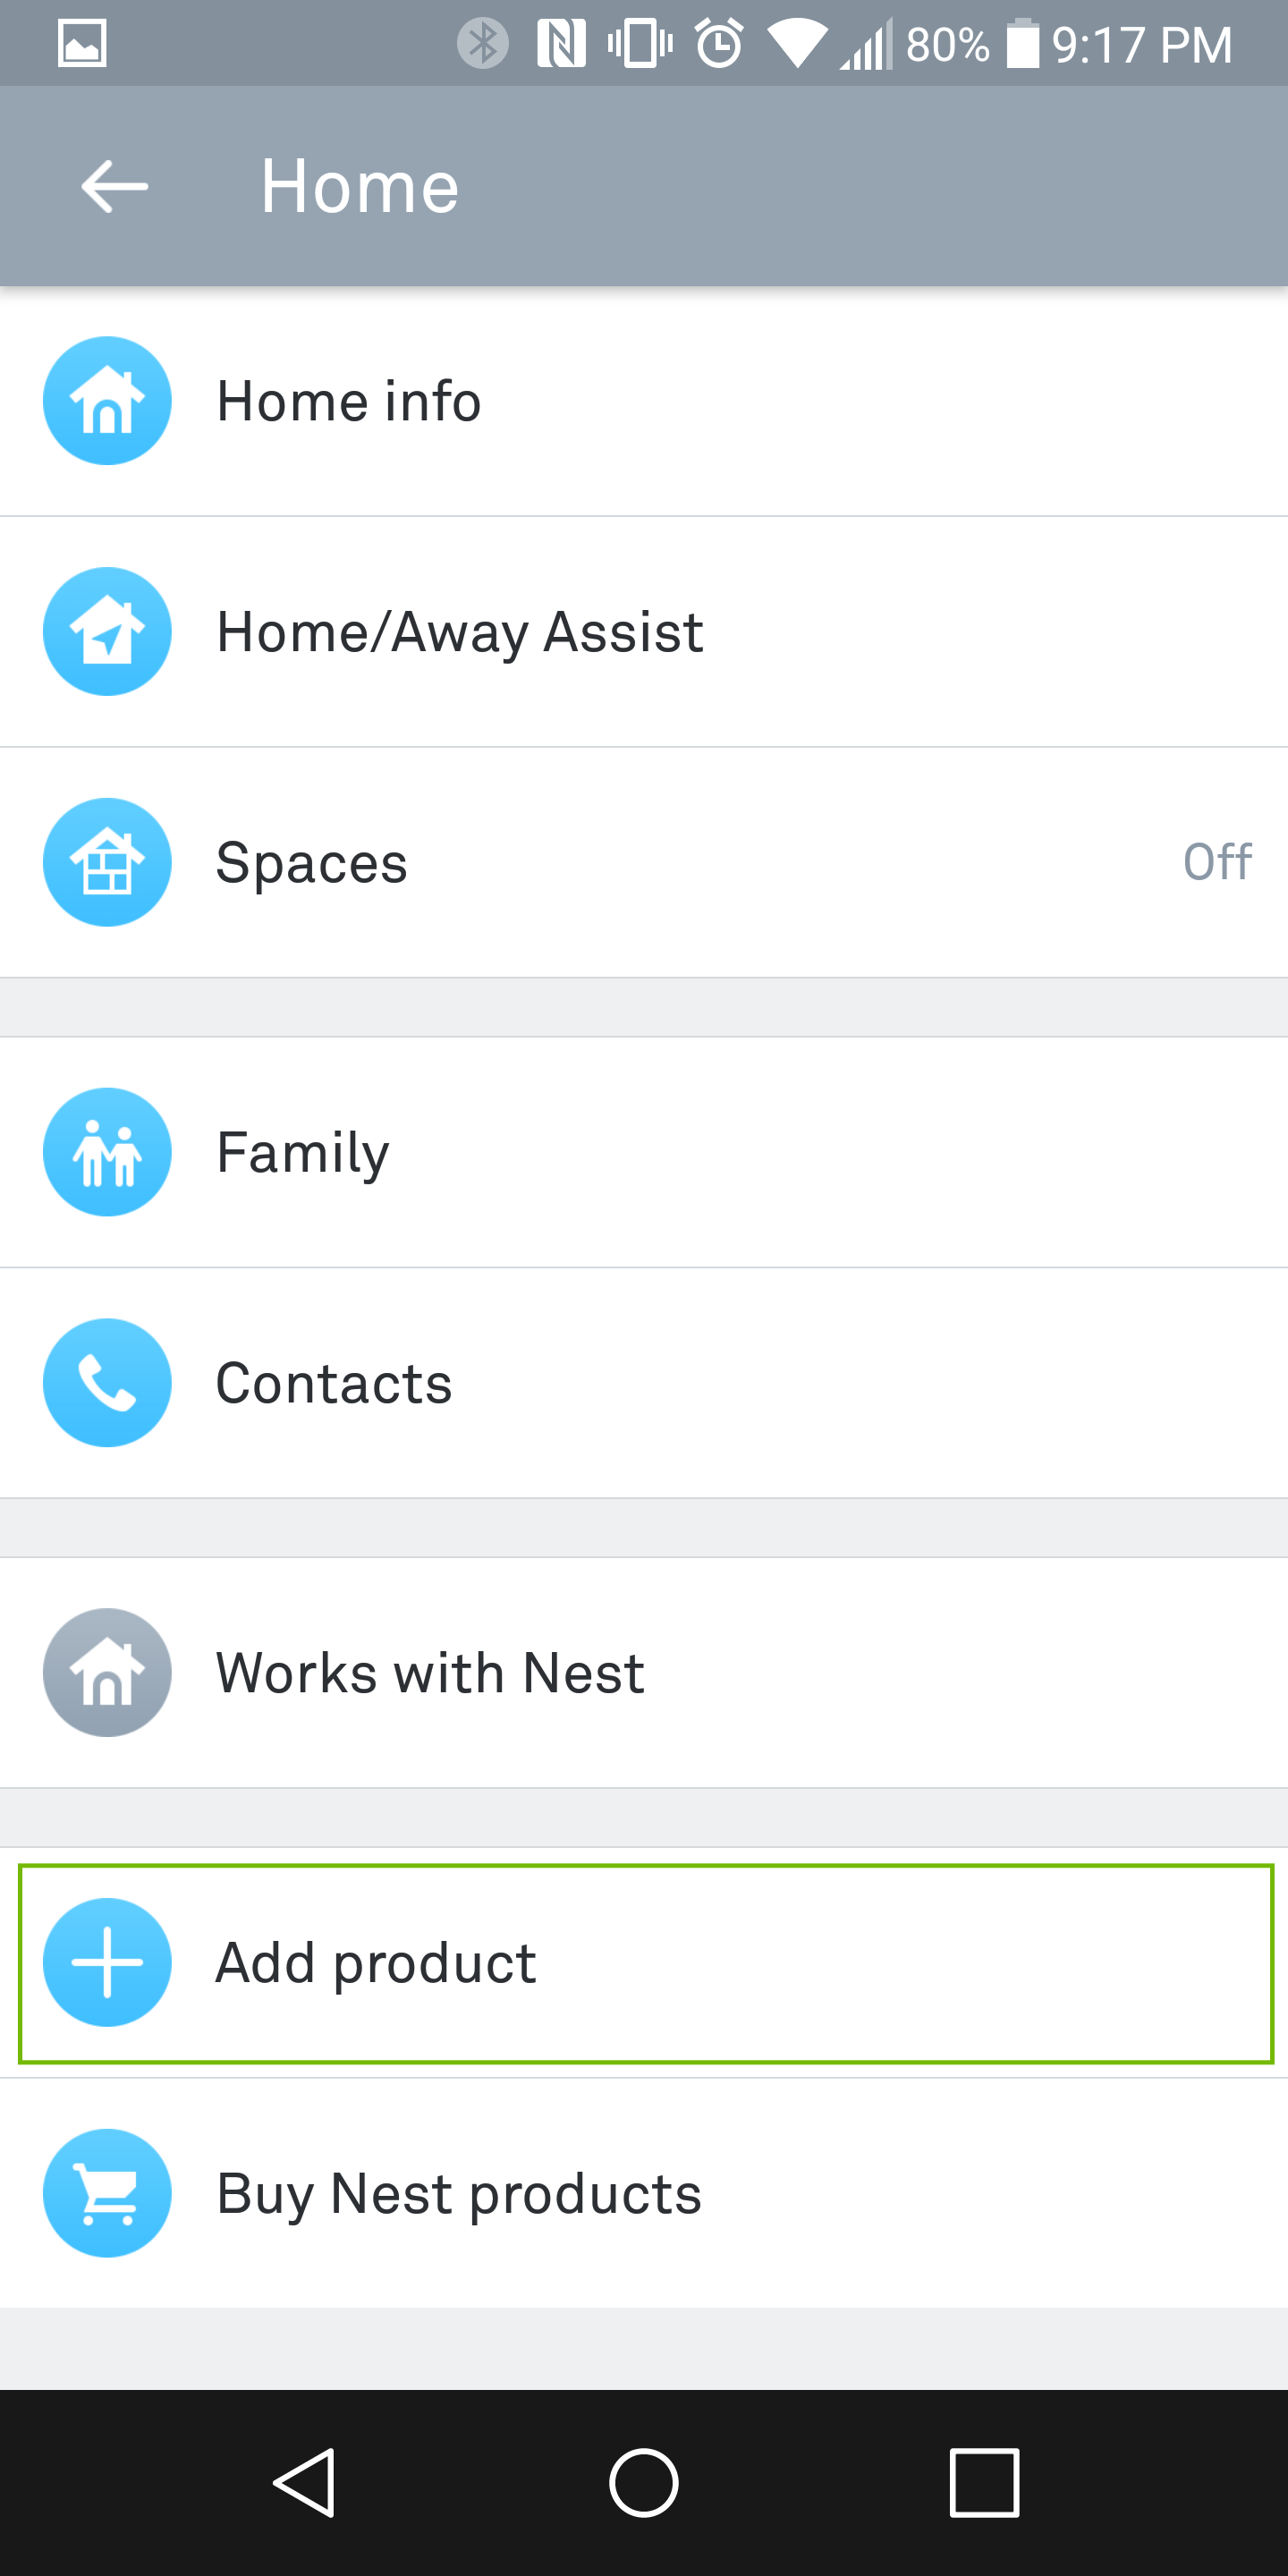 settings with add product highlighted